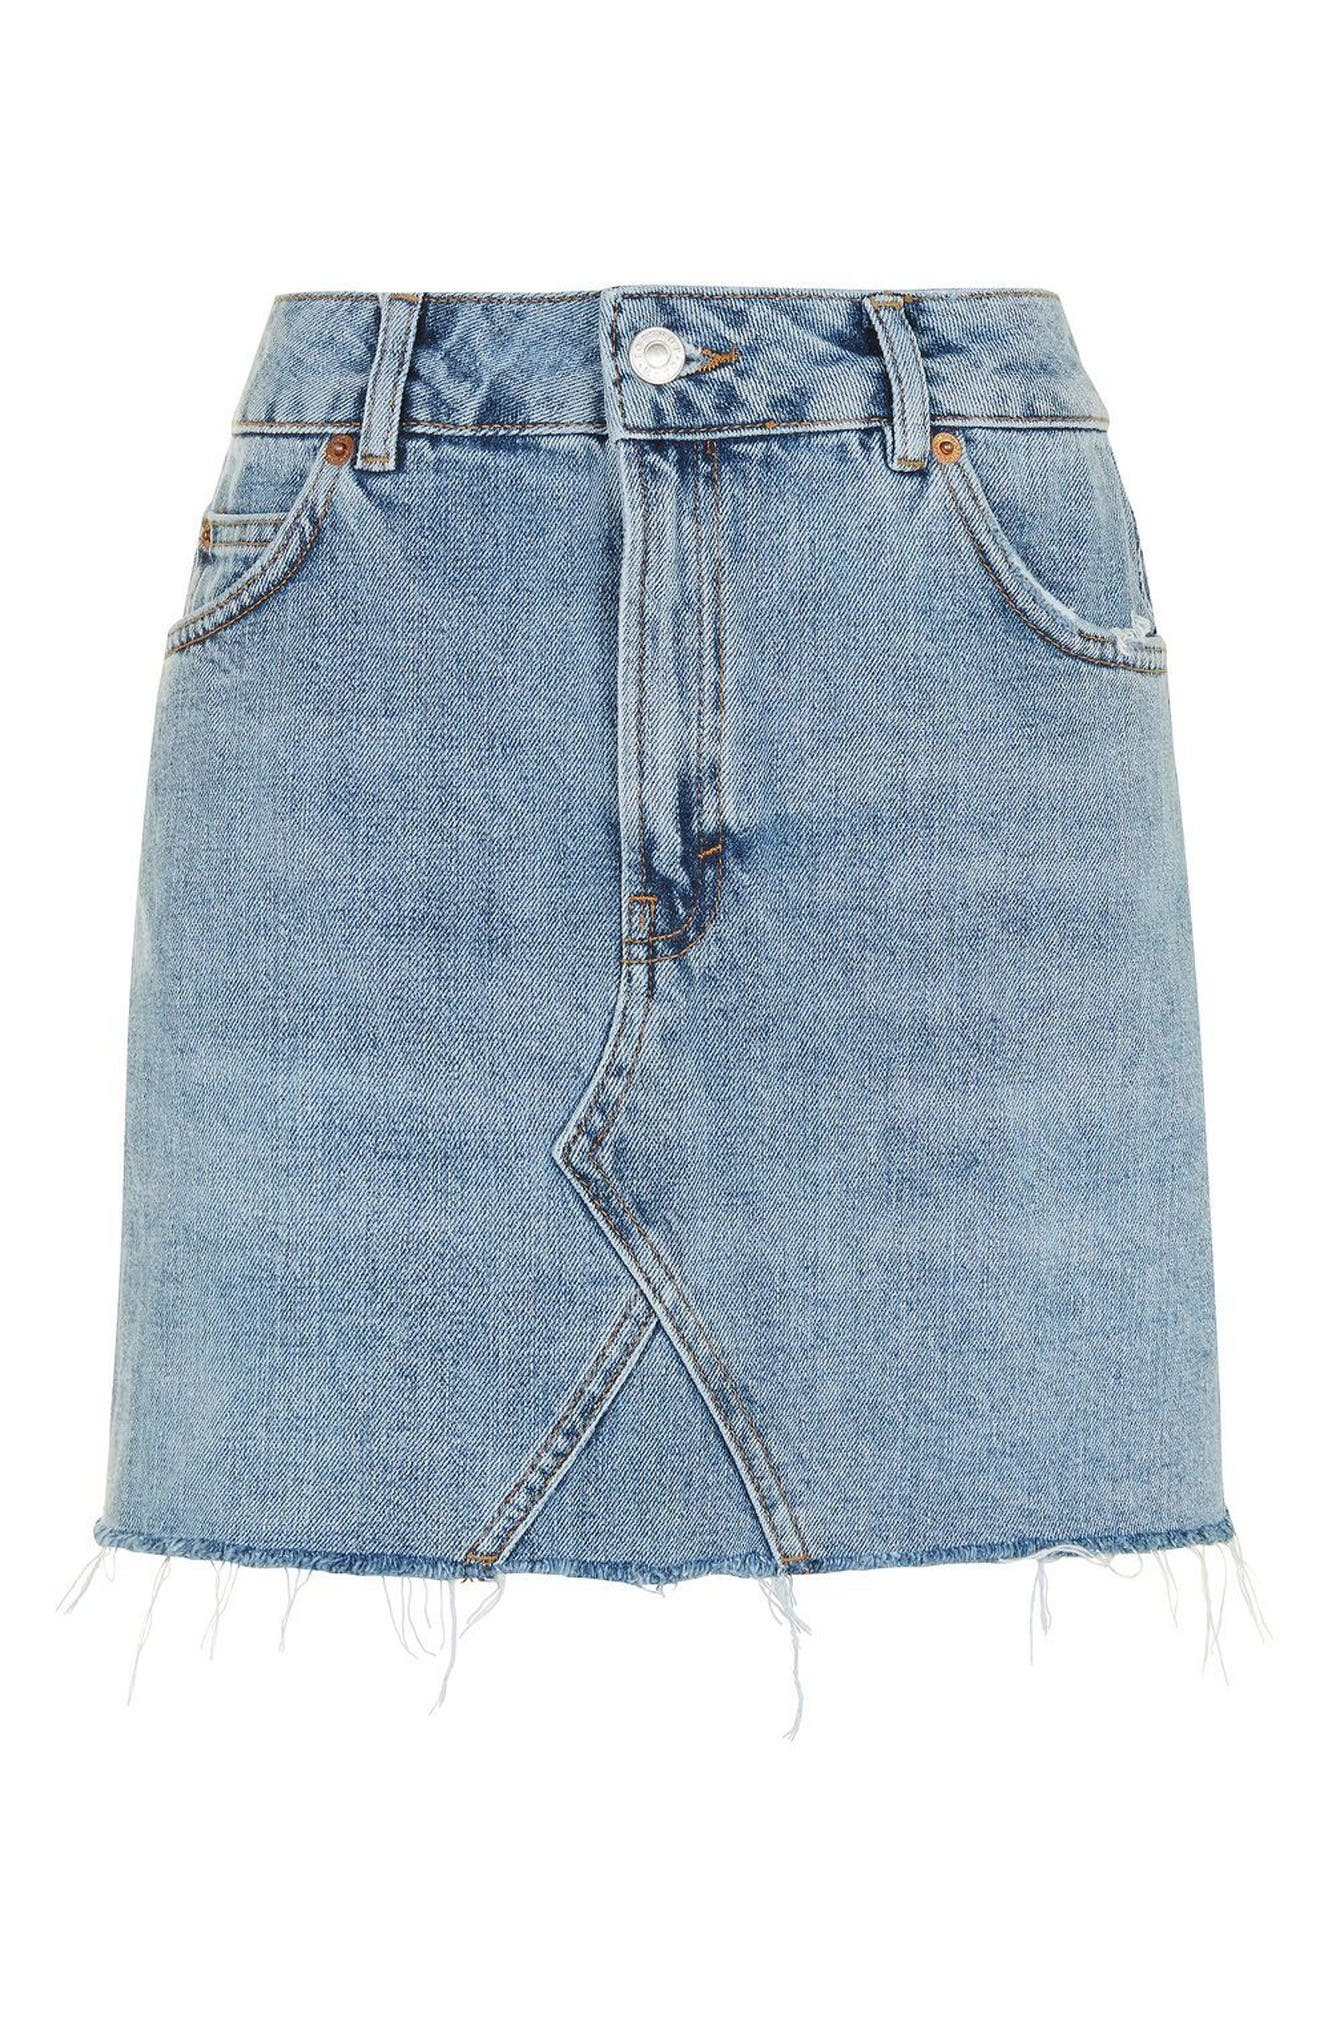 Denim Miniskirt,                             Alternate thumbnail 3, color,                             Mid Denim